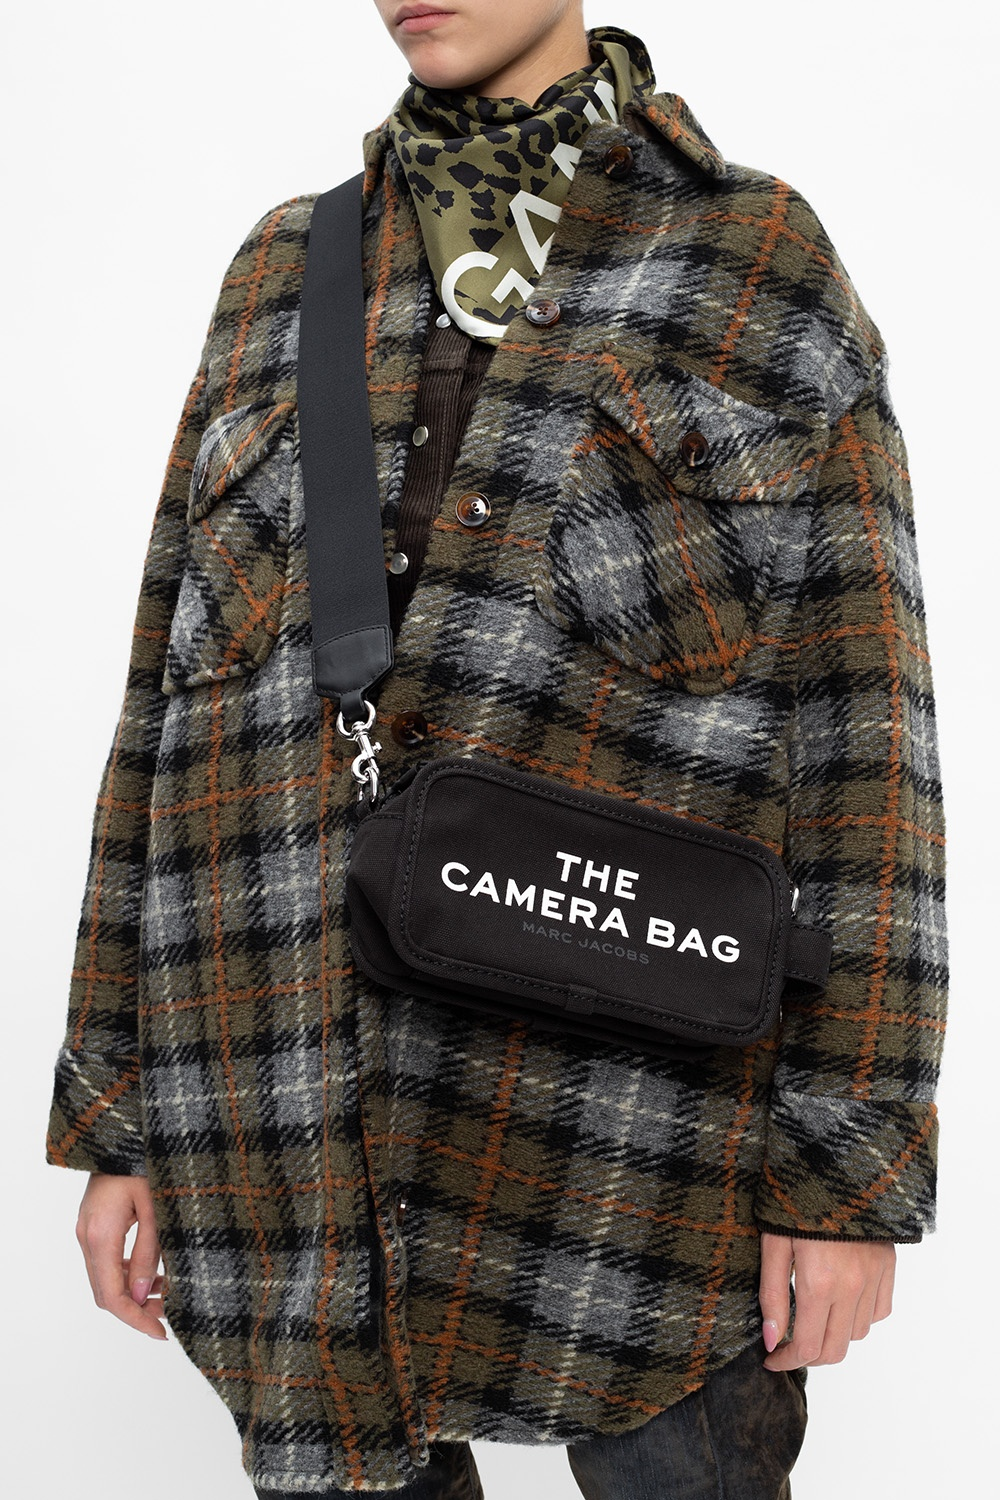 「The Marc Jacobs The Camera Bag 黑色」的圖片搜尋結果